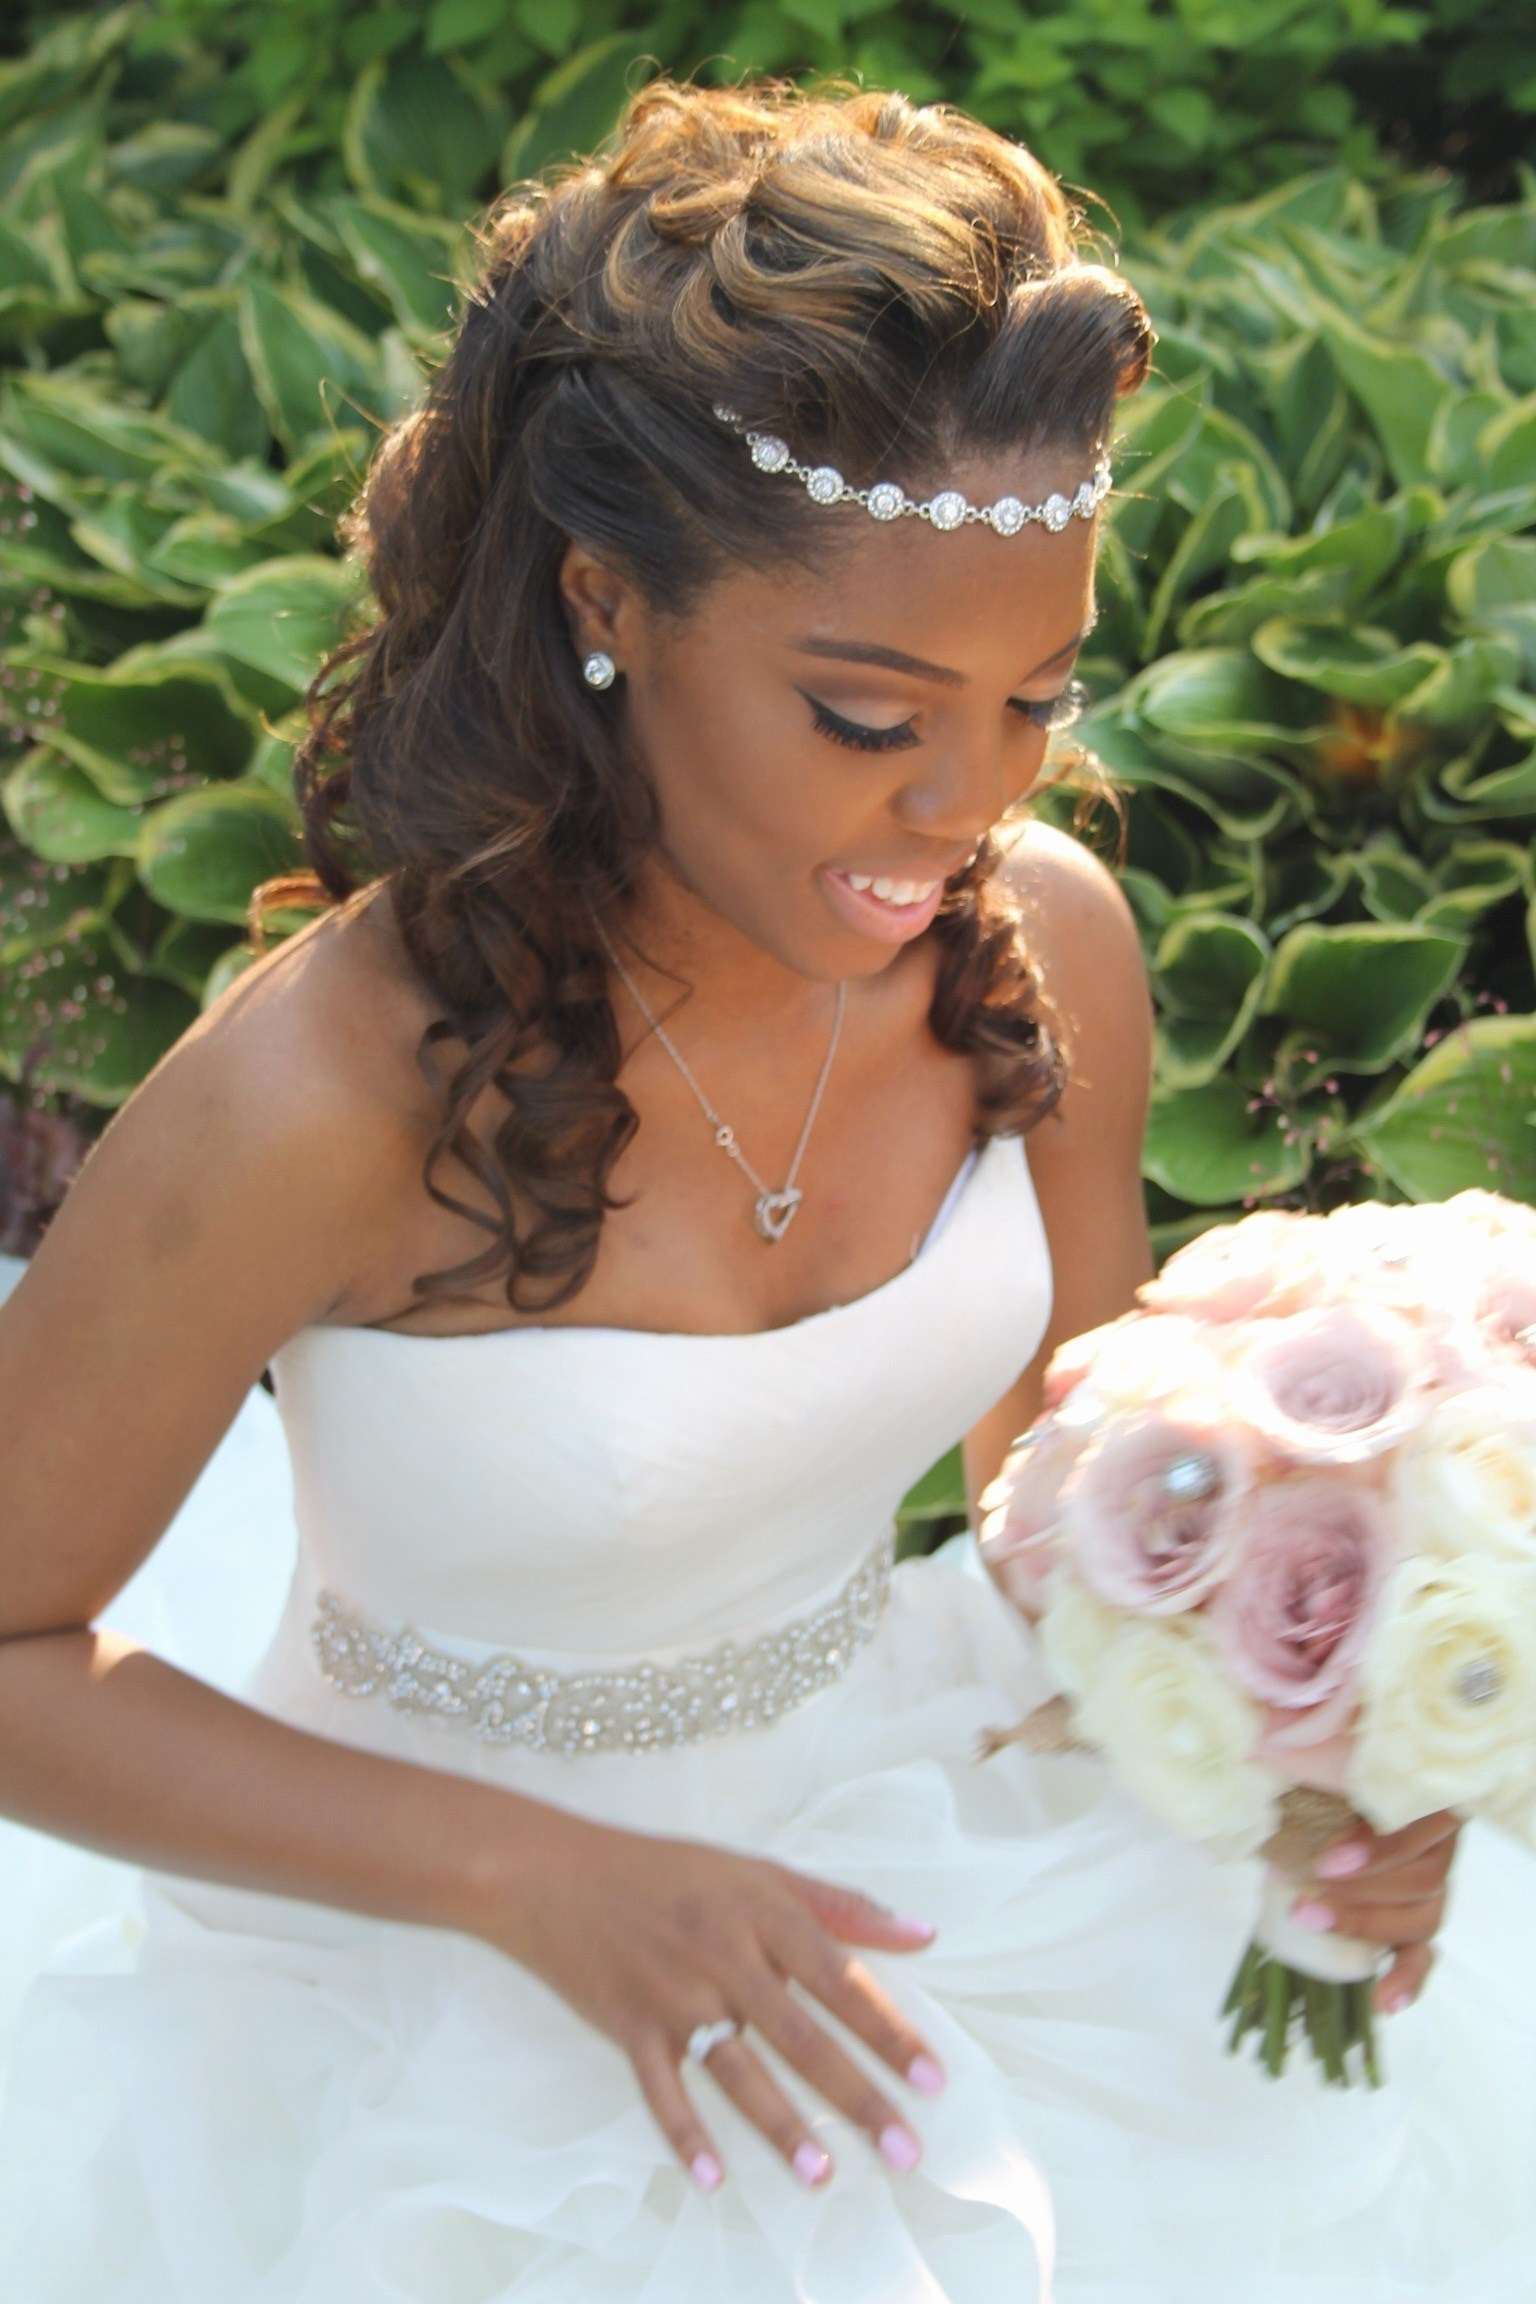 Hairstyles 2018 Within Fashionable Zambian Wedding Hairstyles (View 8 of 15)